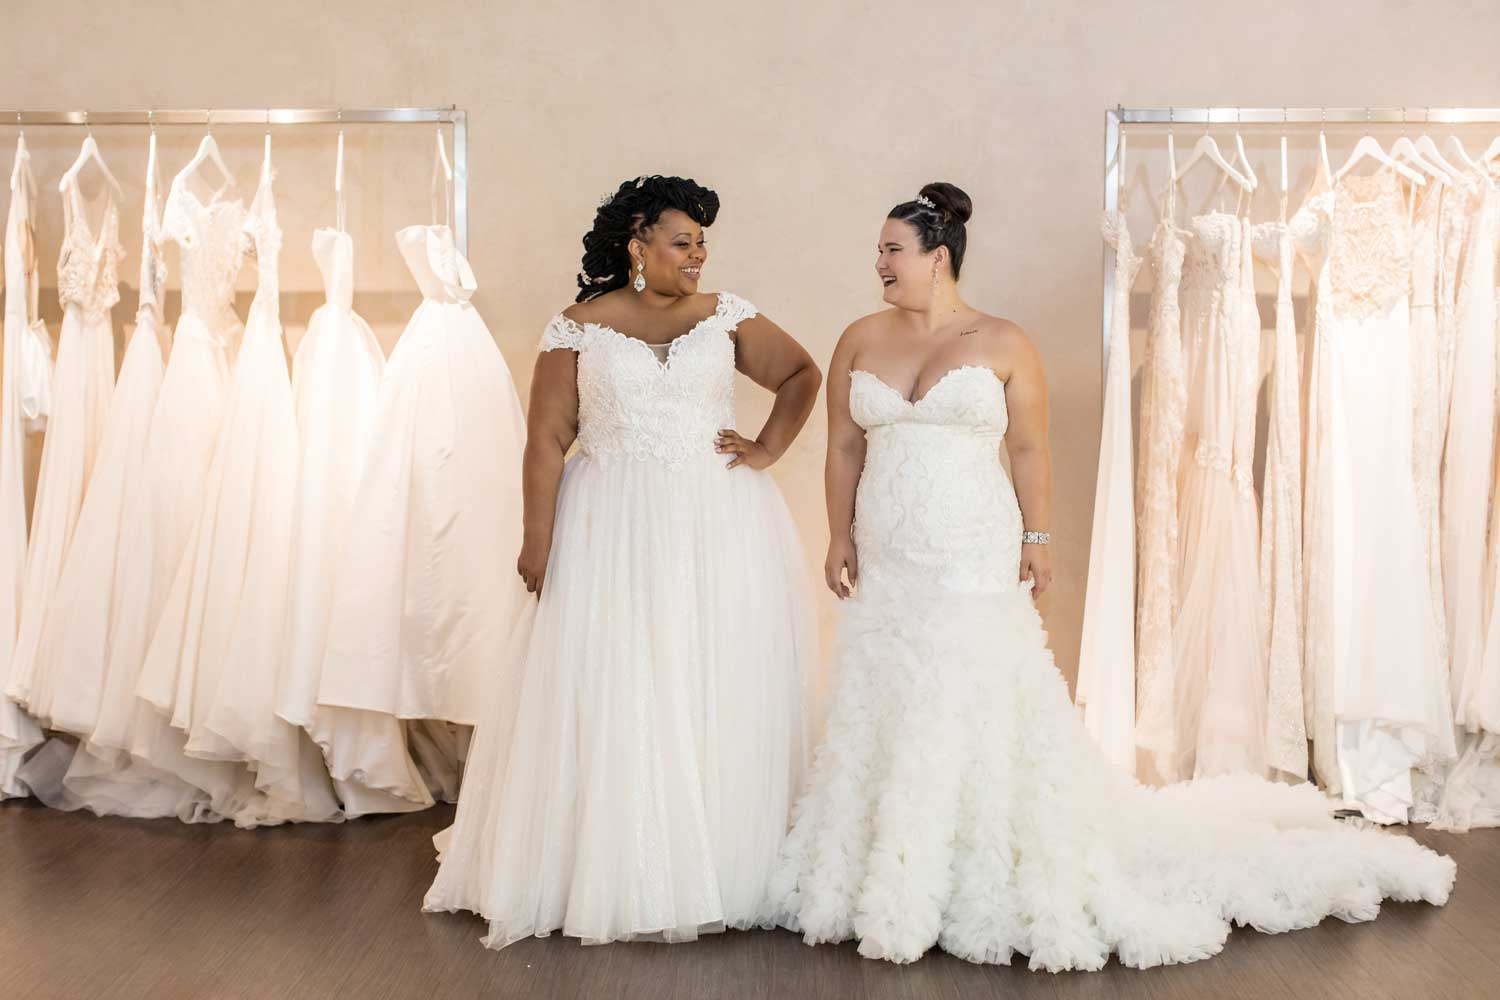 plus-size brides smiling at each other at Solutions Bridal